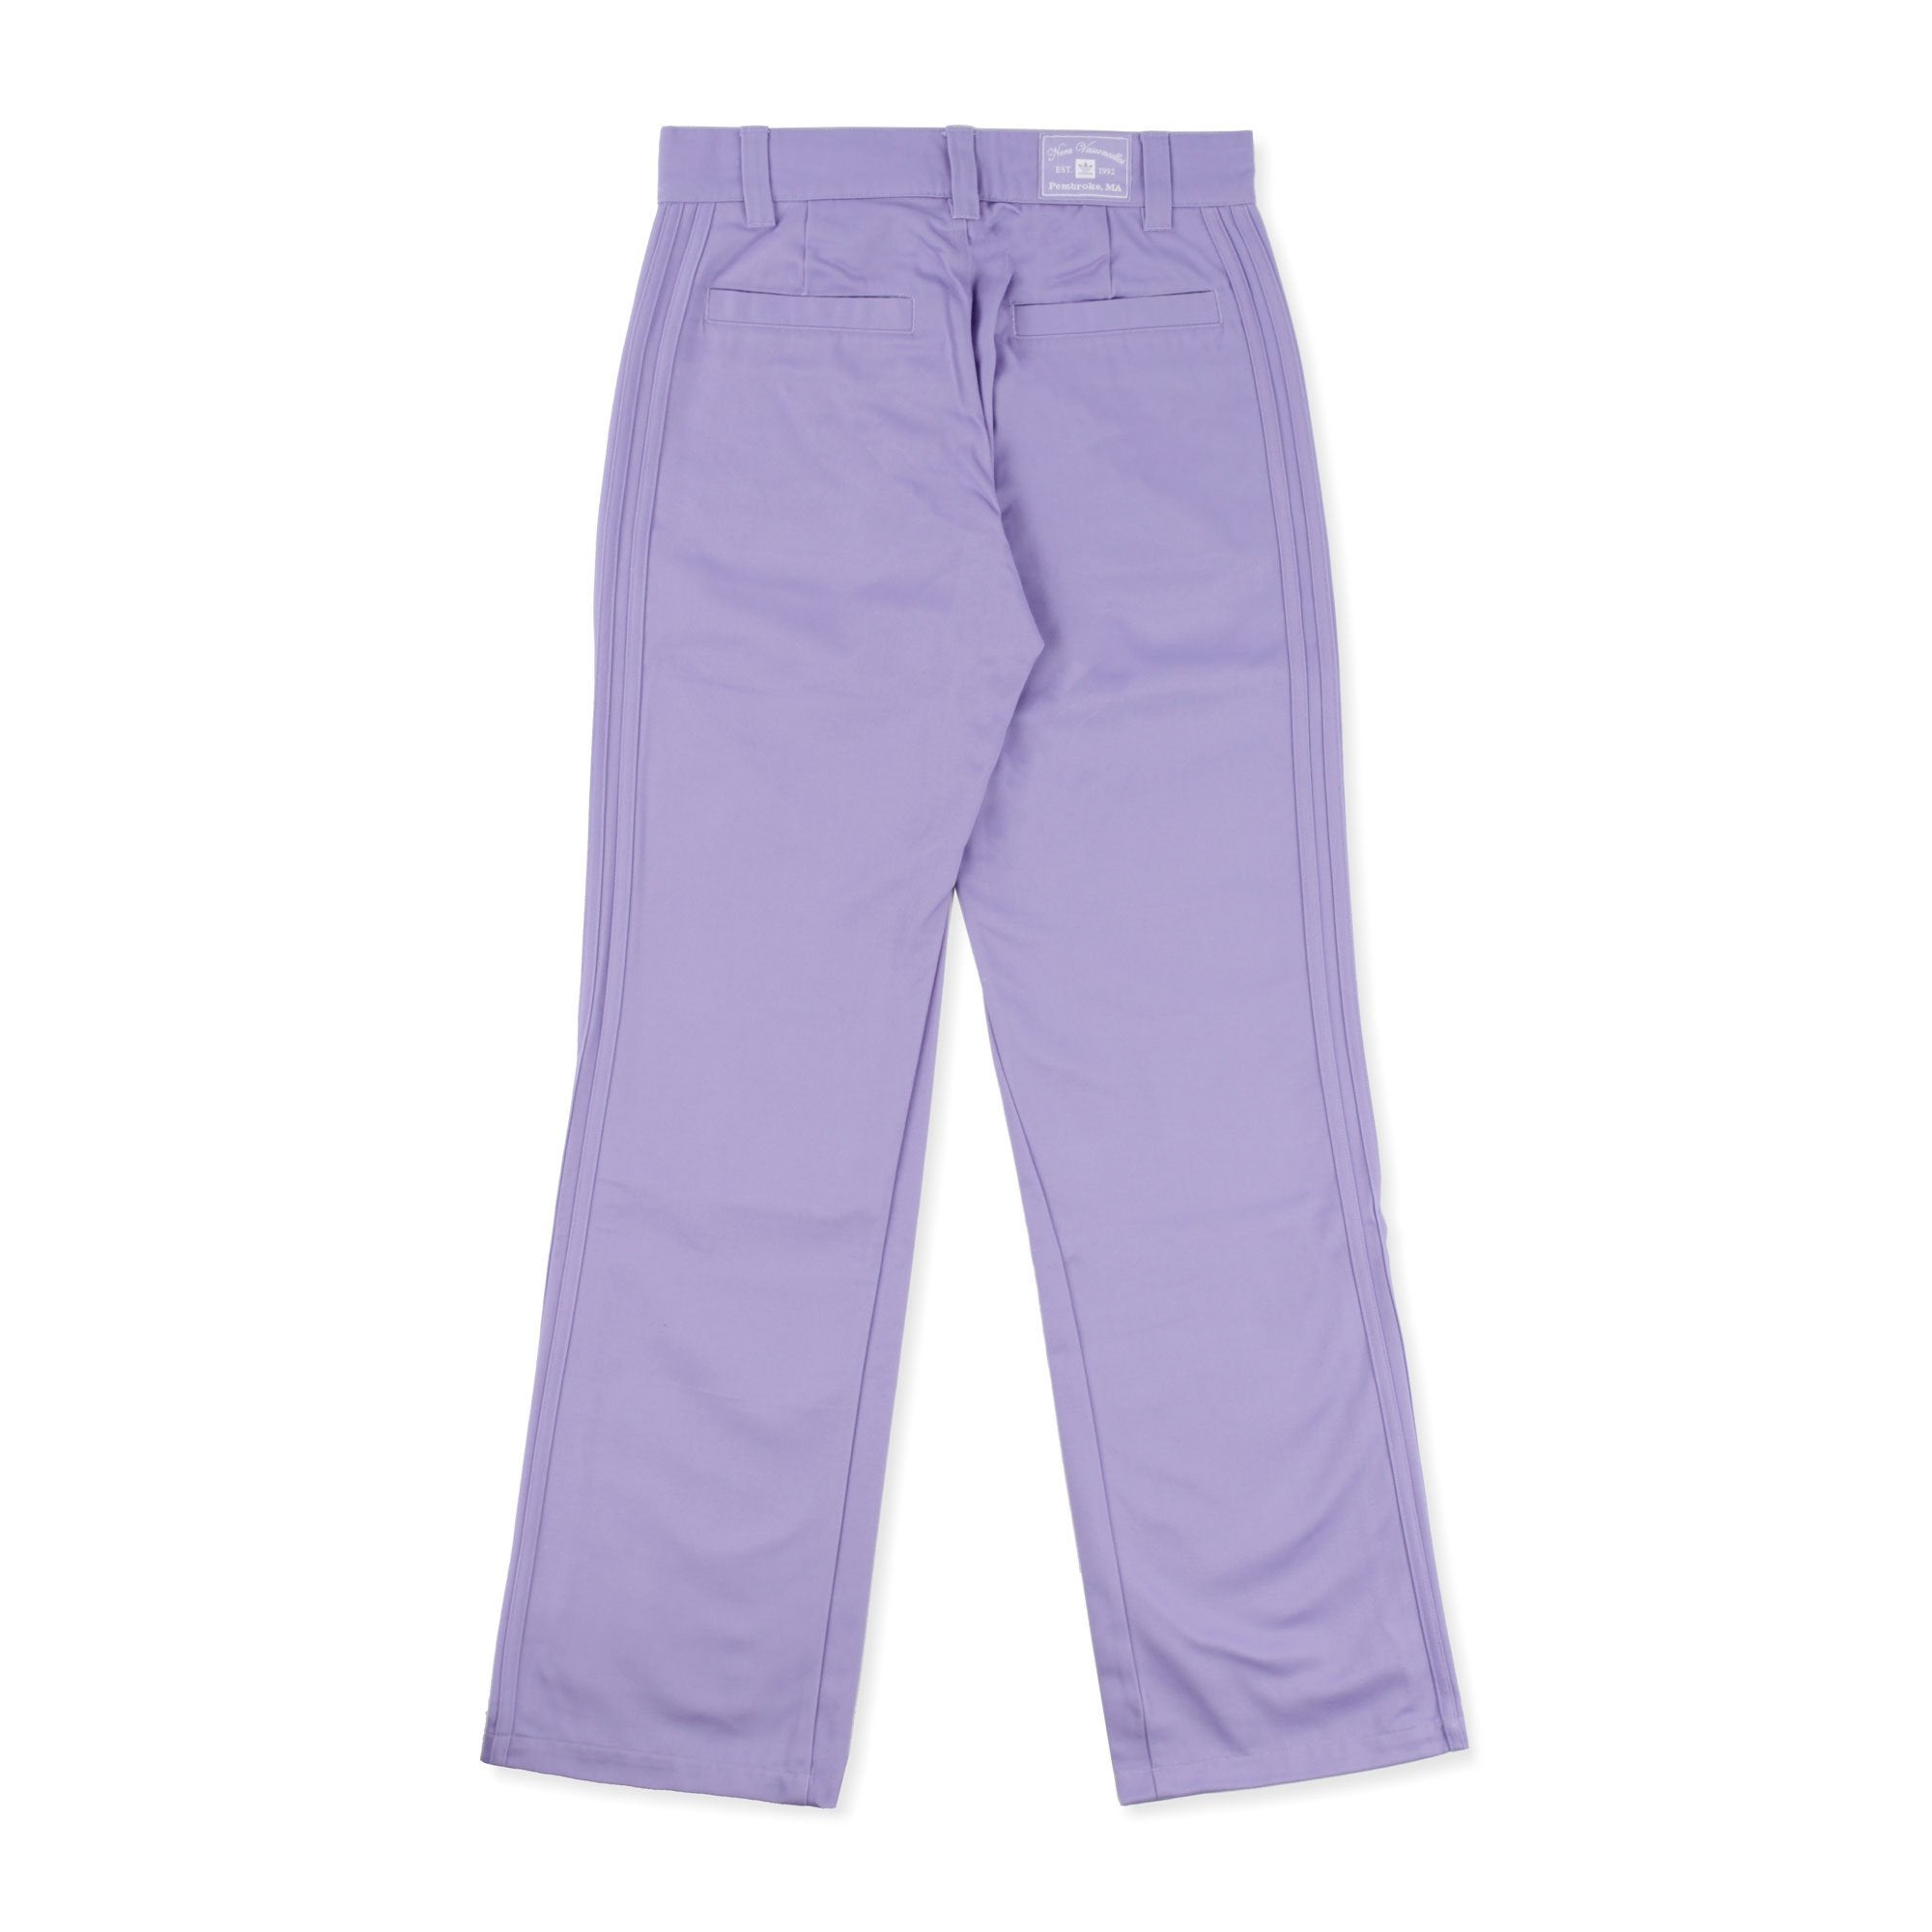 Adidas Nora Pants Product Photo #2